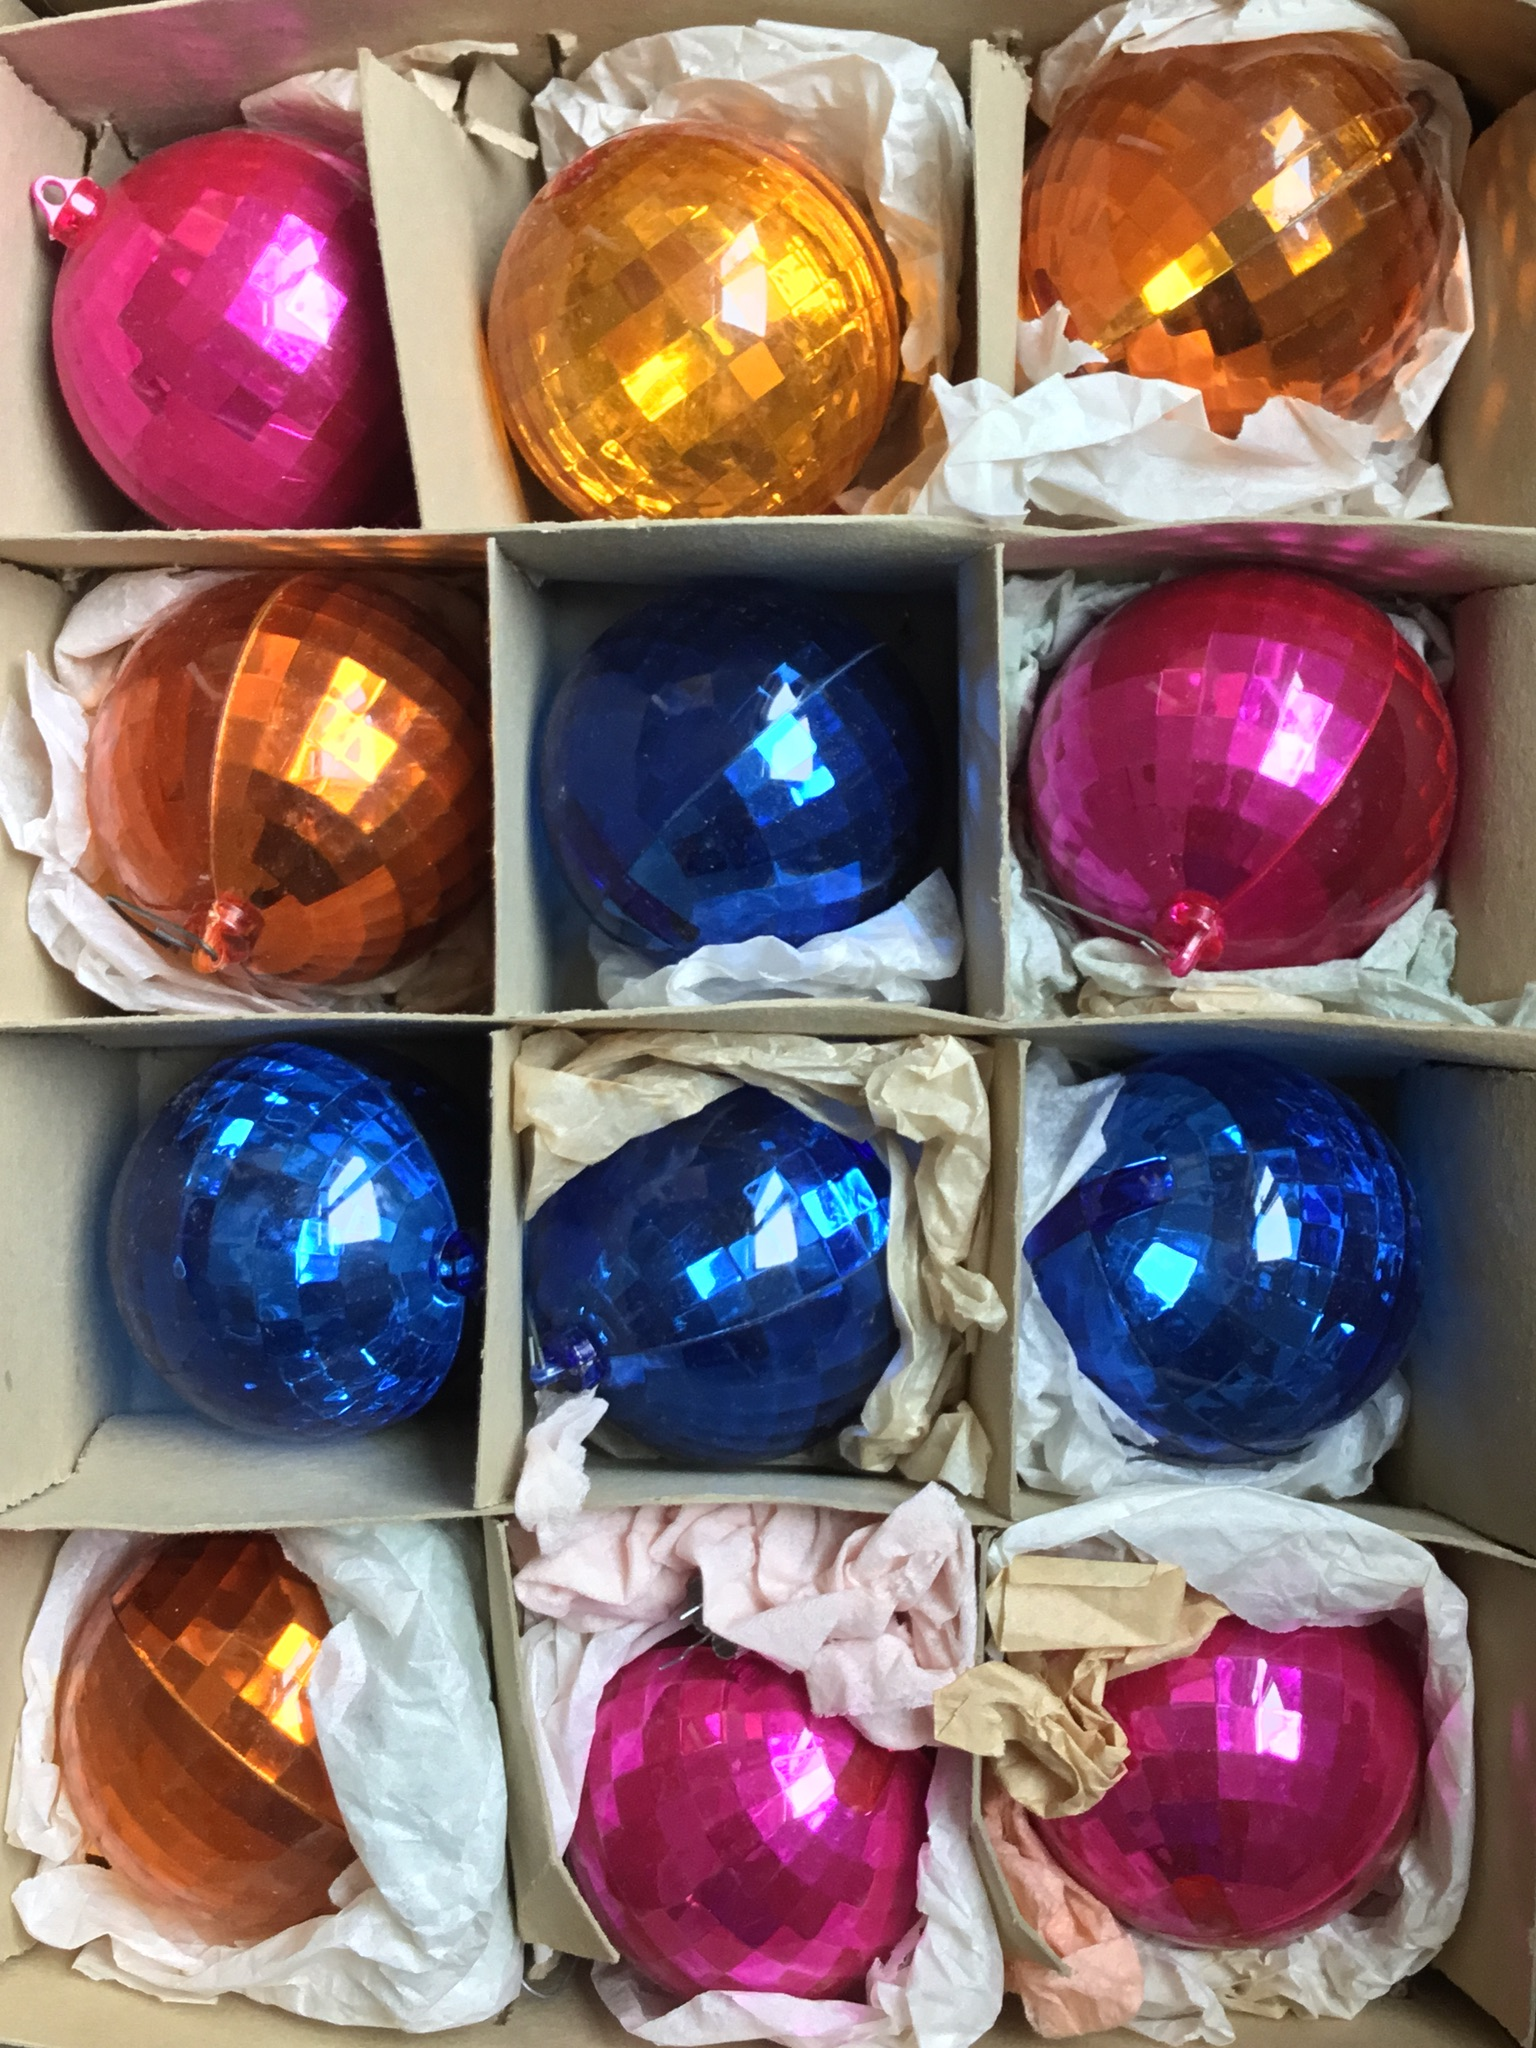 vintage shiny brite ornaments 12 pieces - Vintage Shiny Brite Christmas Ornaments